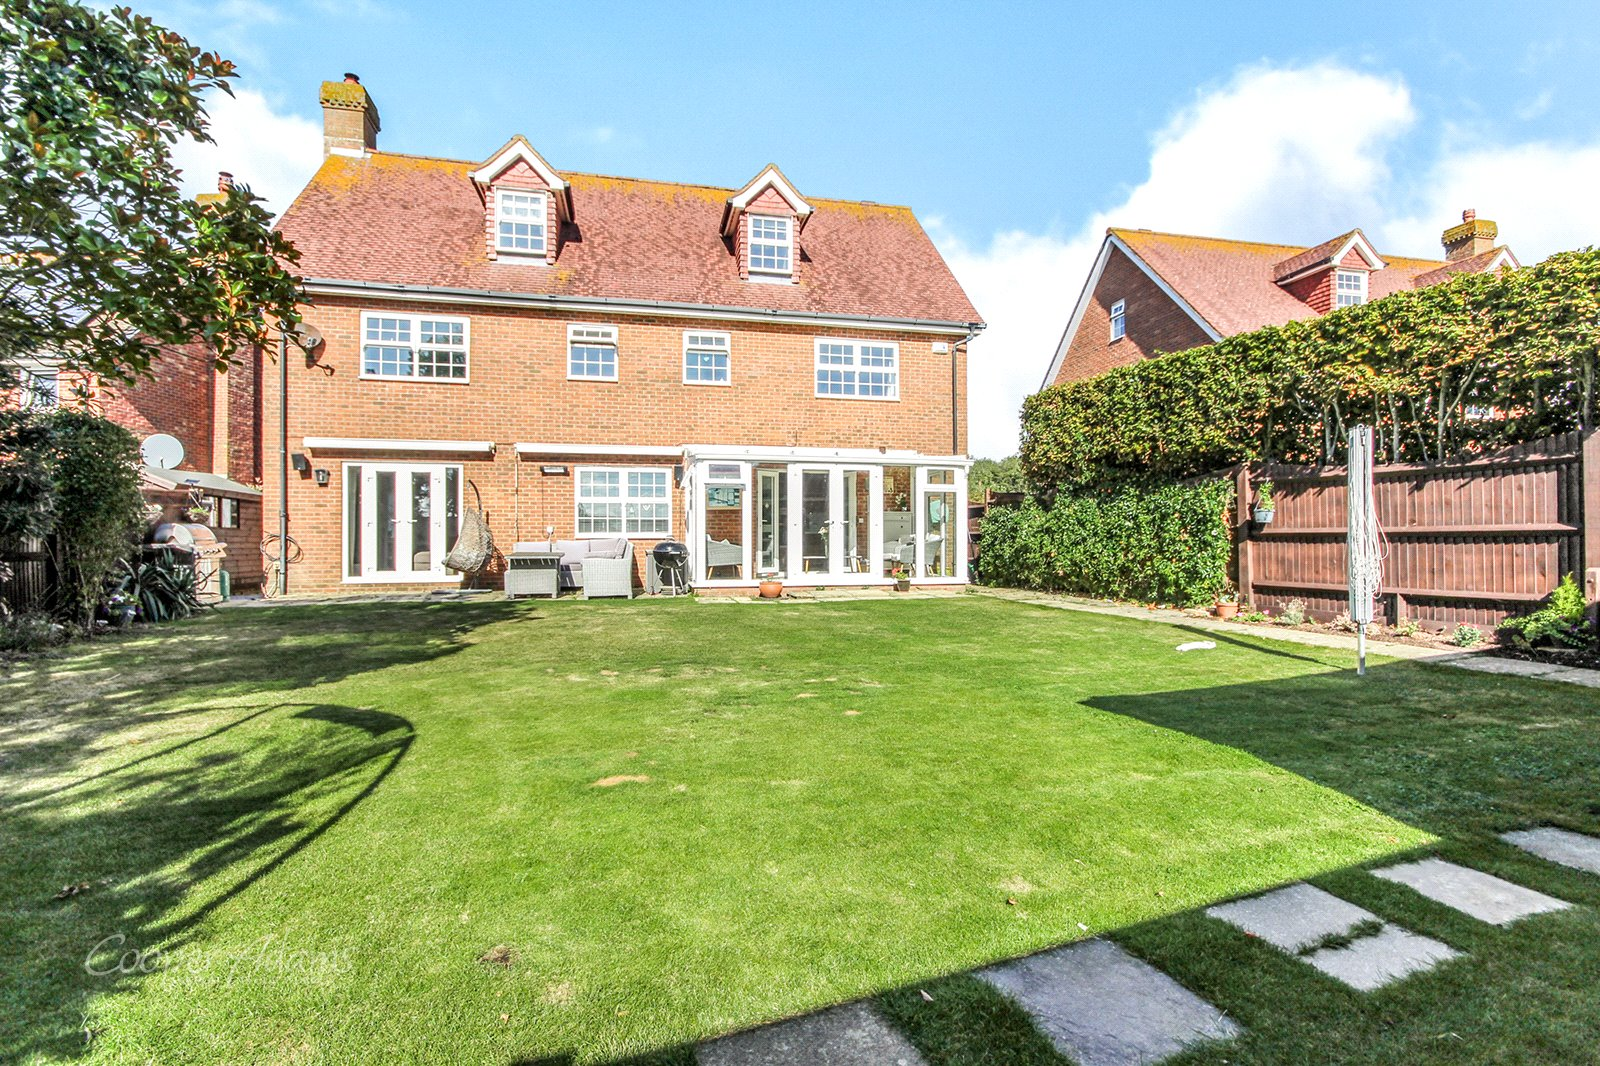 6 bed house for sale in Bramley Way, Angmering, BN16